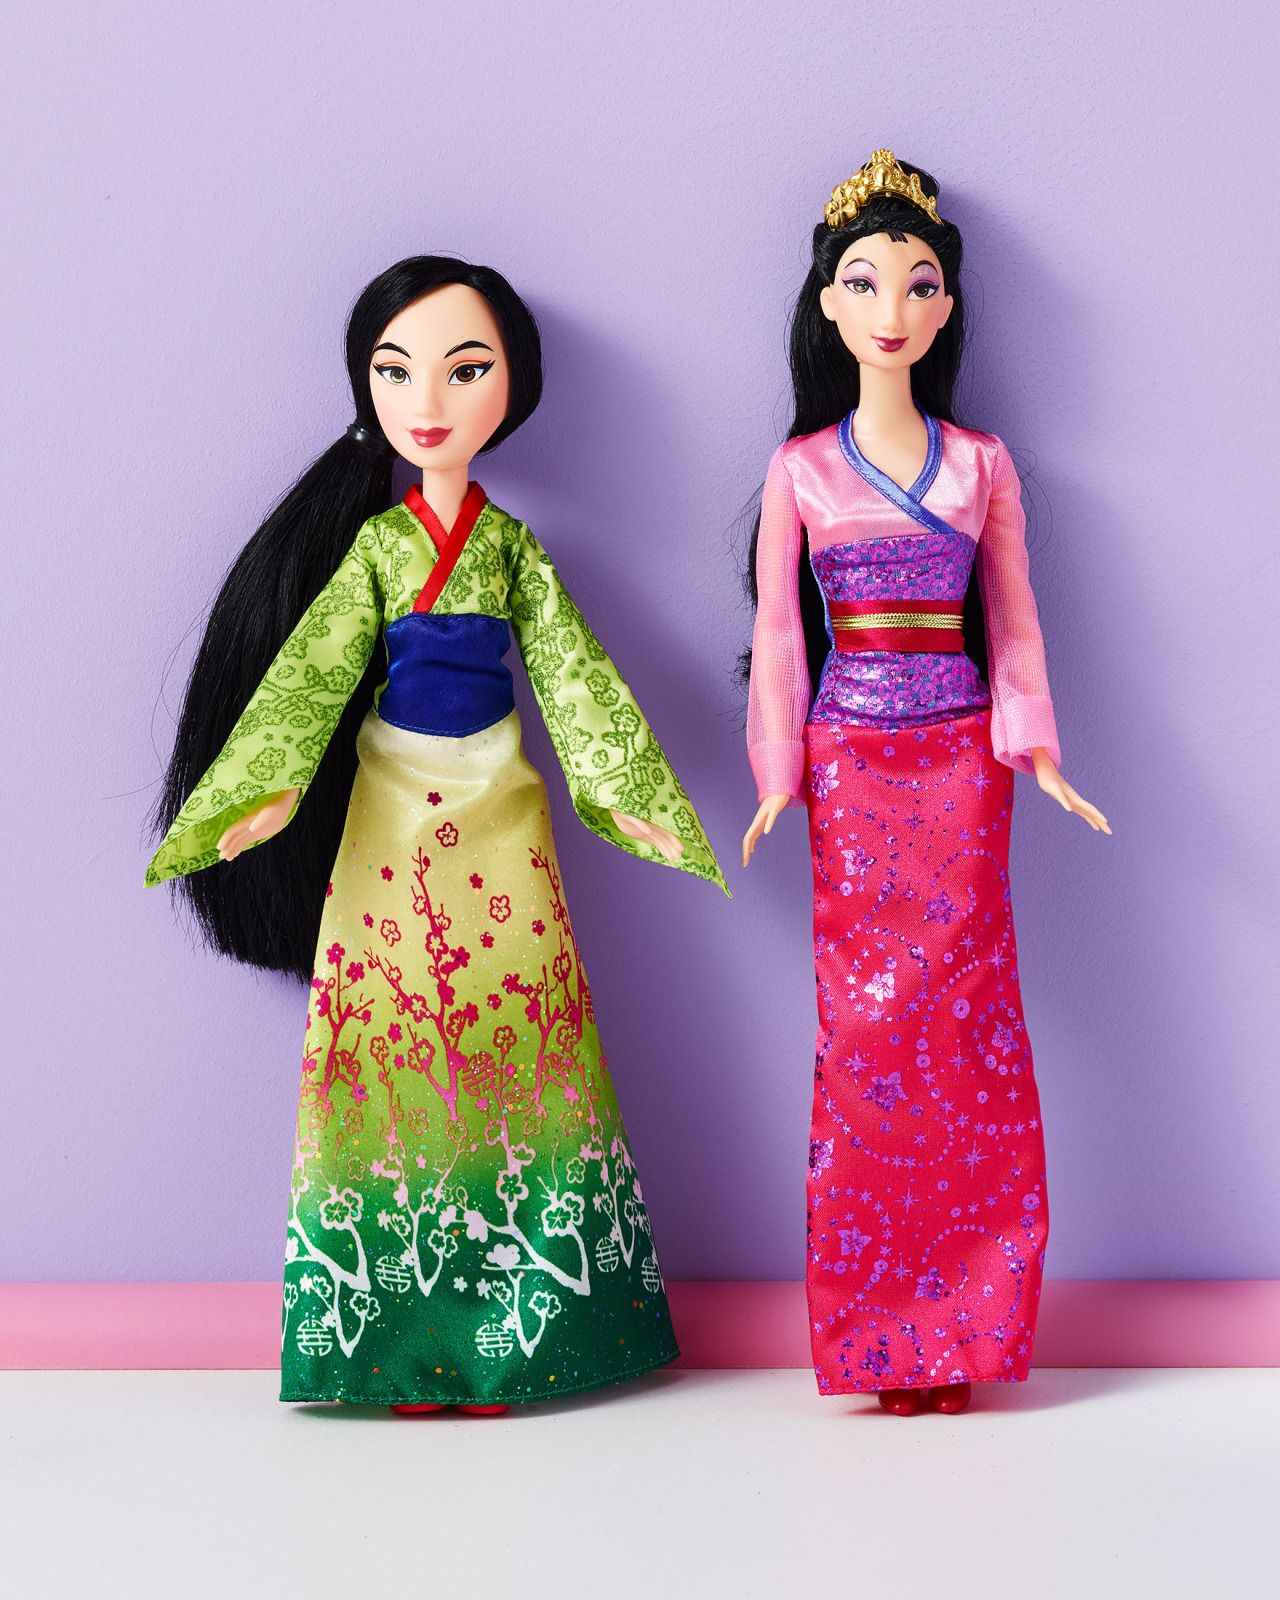 Let it grow, New 2016 Hasbro Mulan Doll | Disney Mulan ...